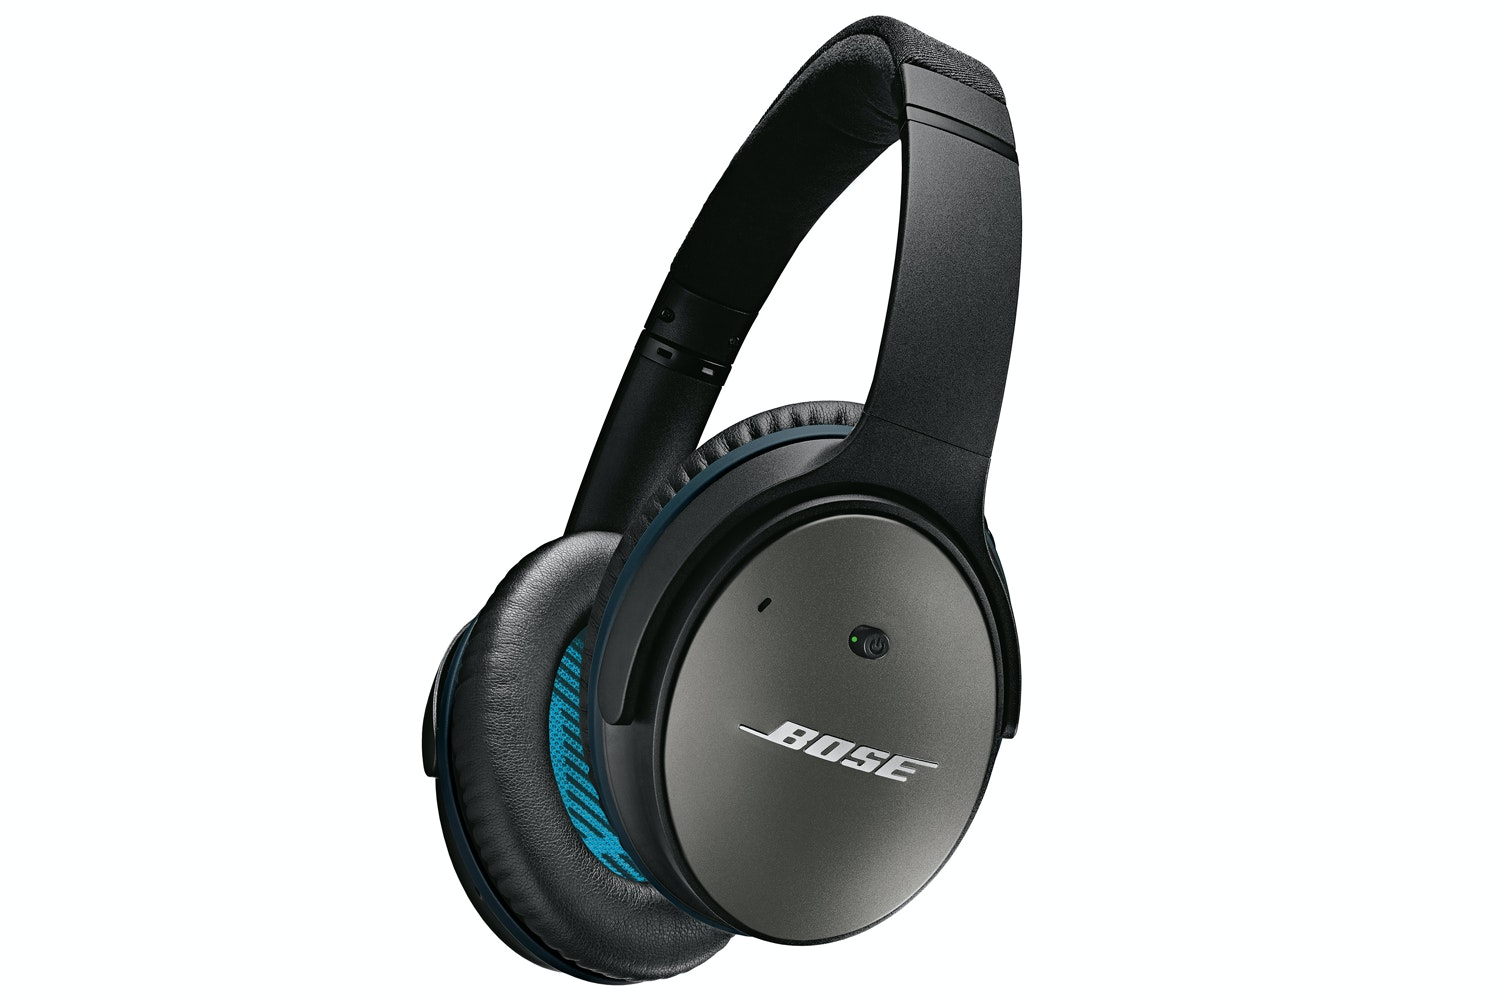 Bose QuietComfort Headphones | QC25